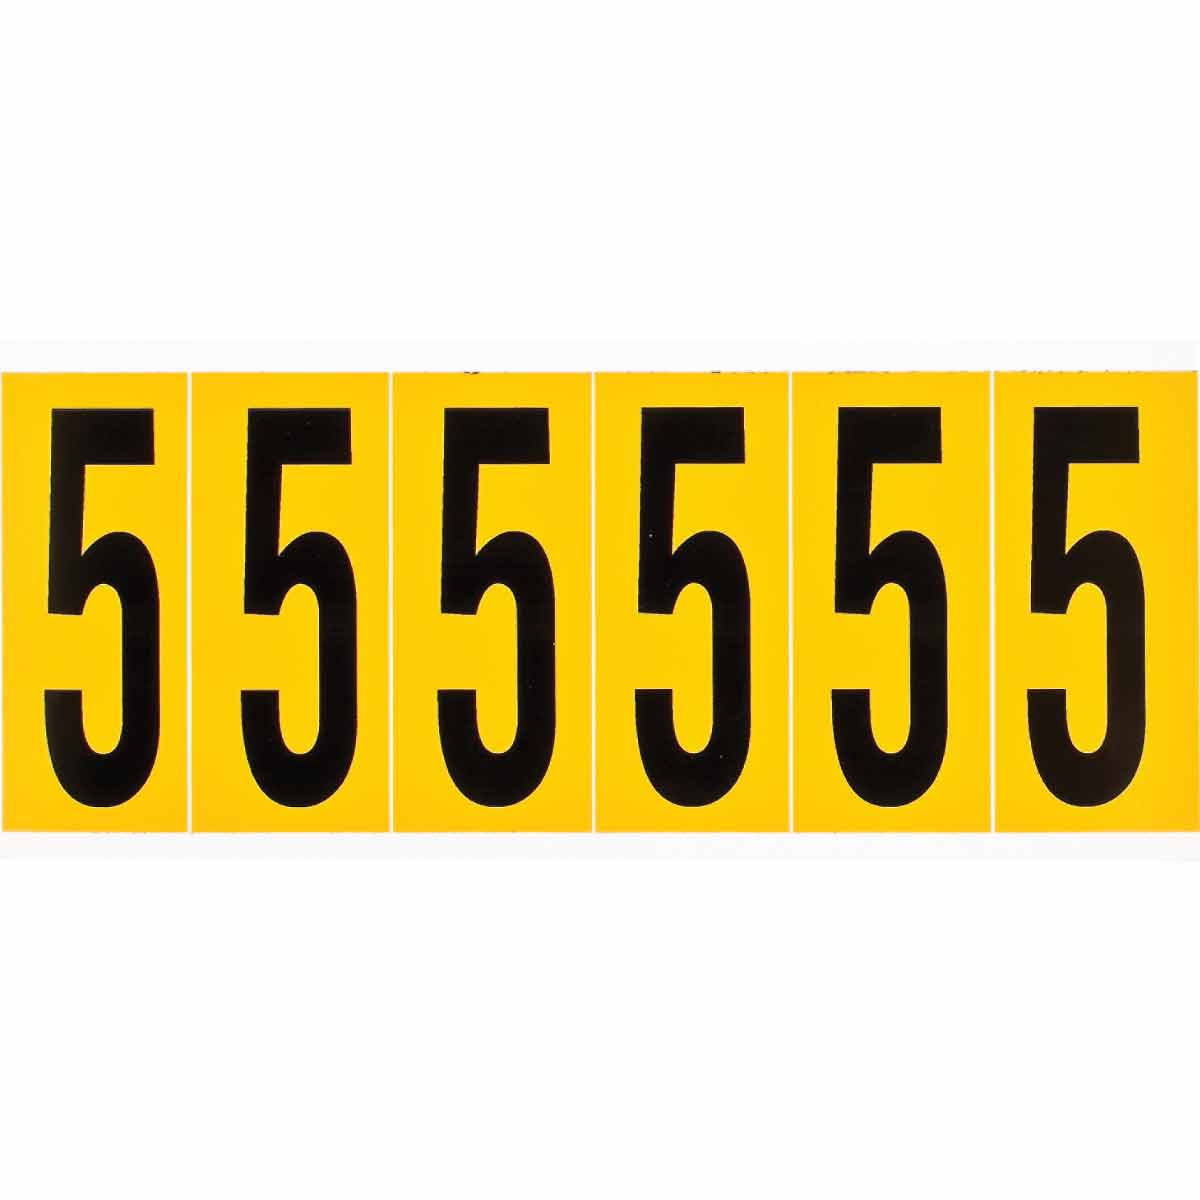 BRADY 1550-5 15 Series Number &Letter Card